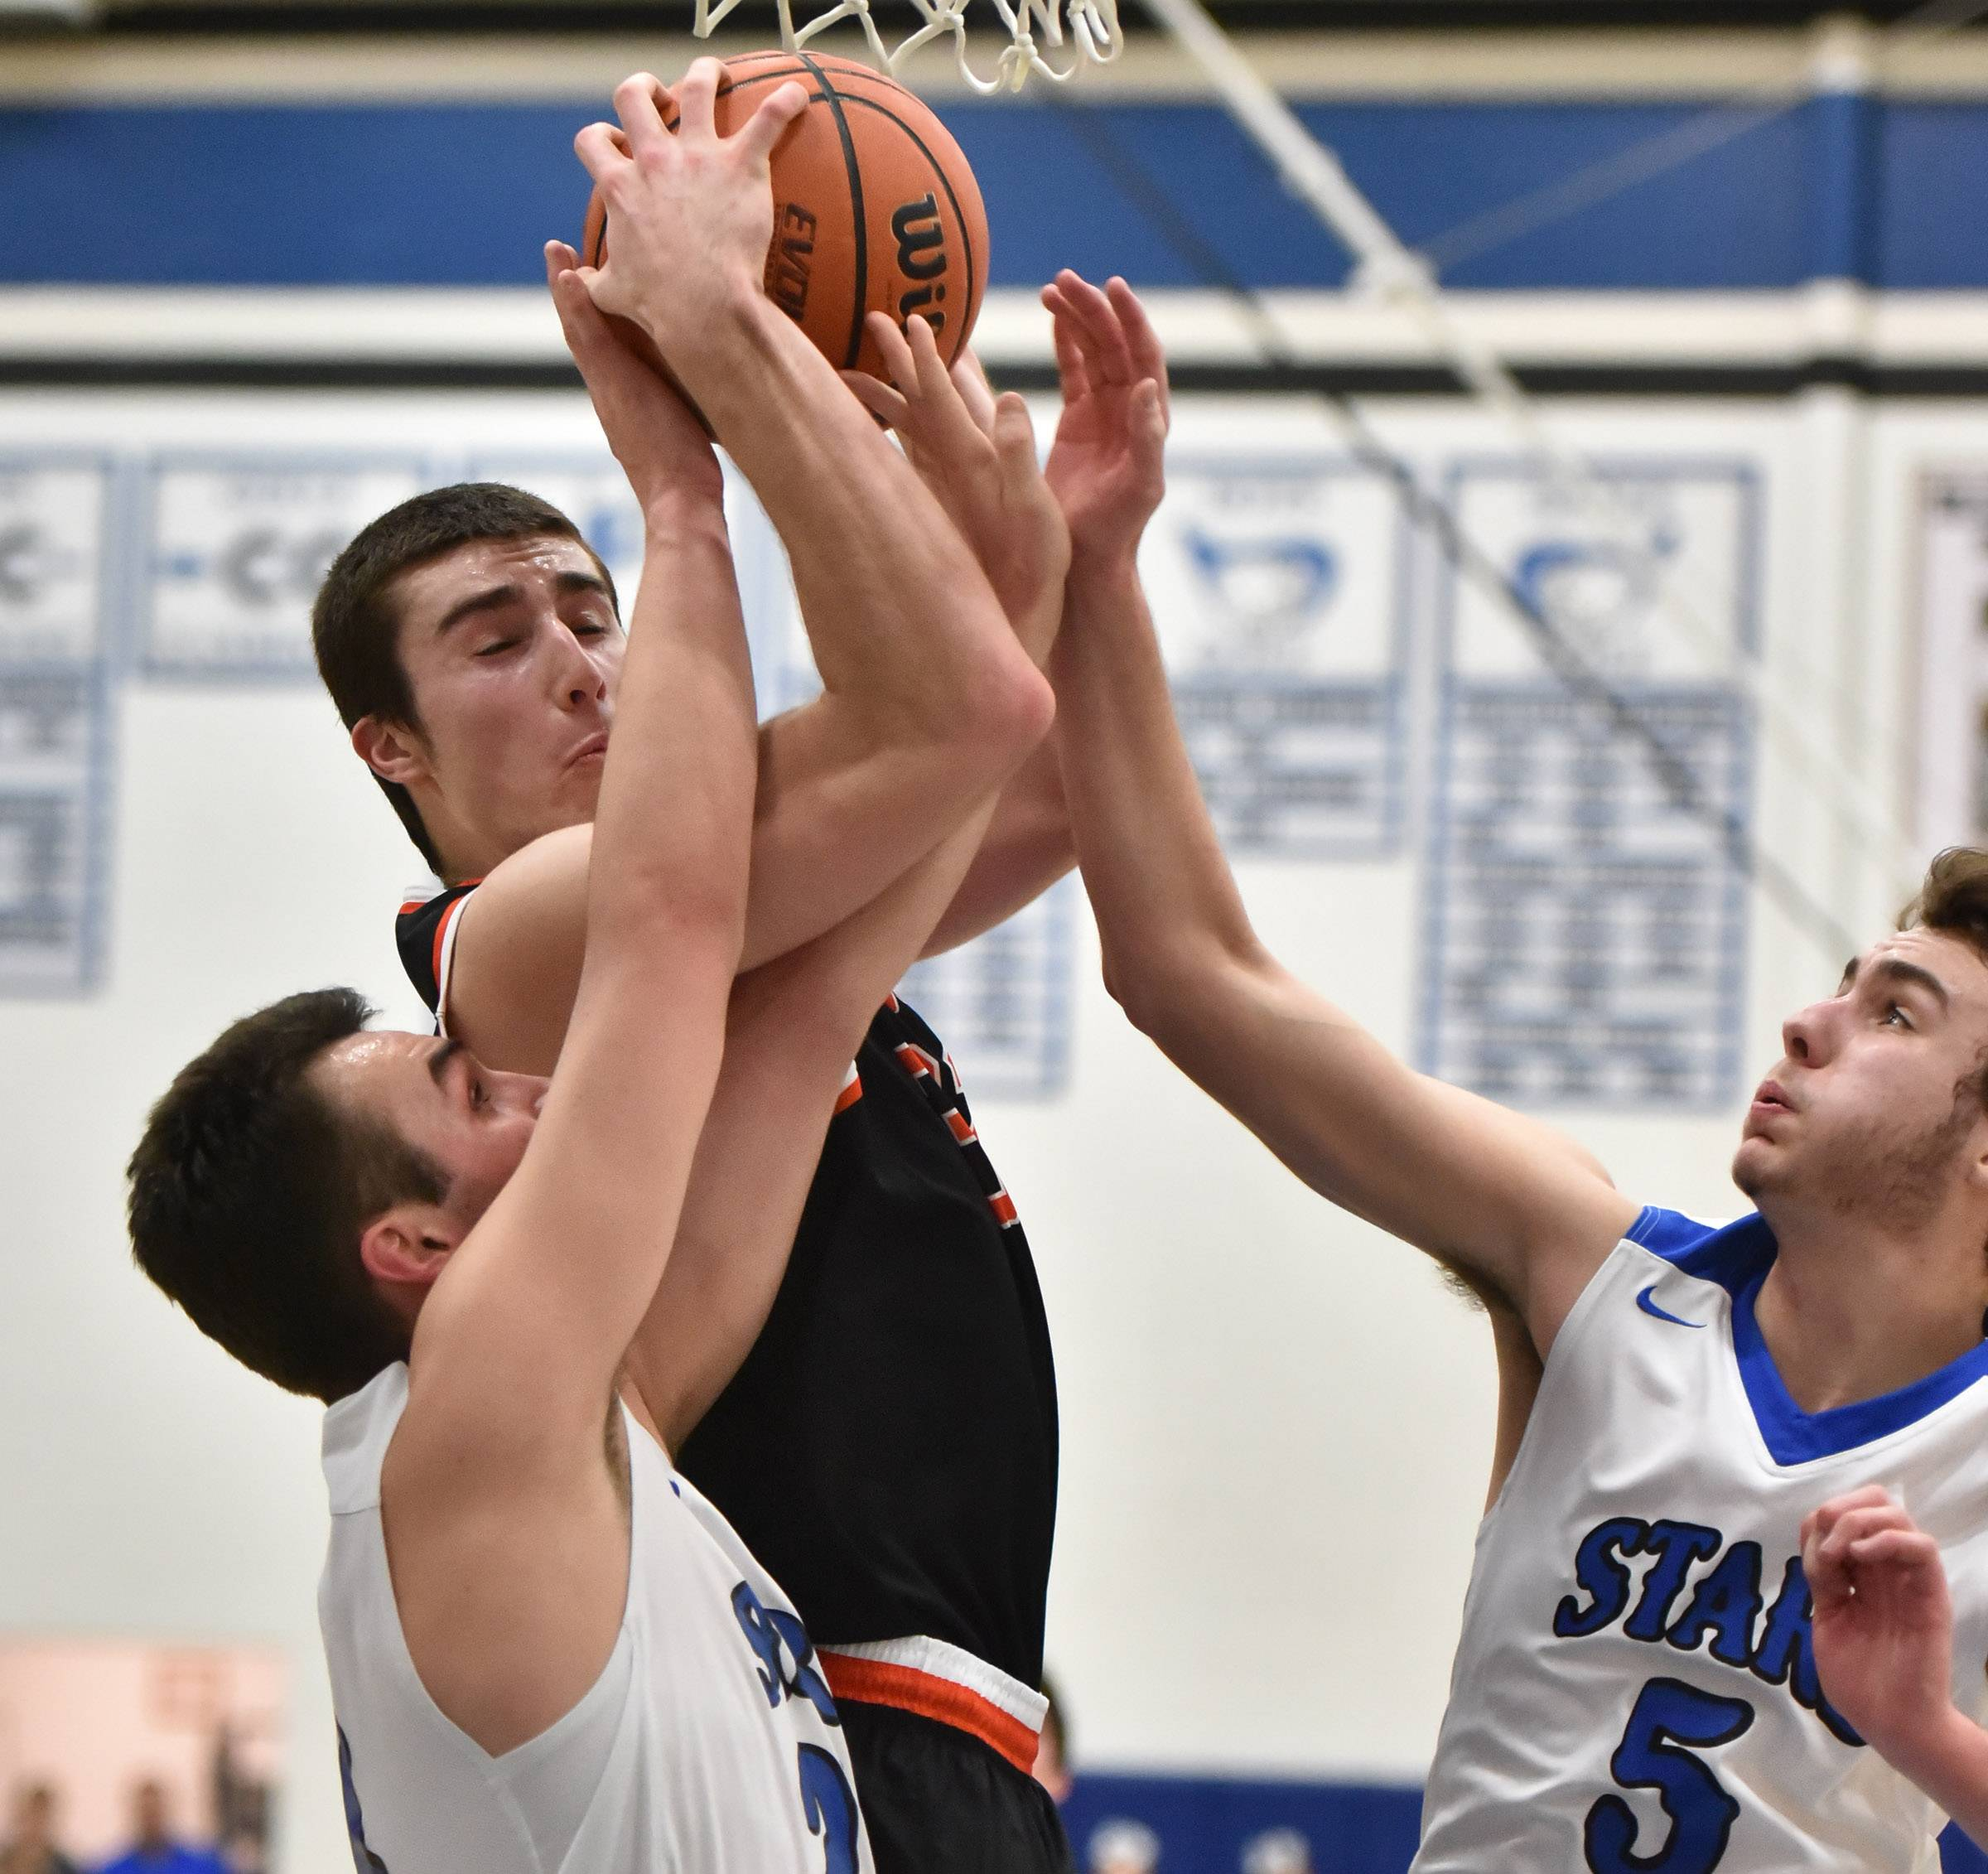 St. Charles East's Justin Hardy secures a rebound between St. Charles North's Ryan Callaghan and Brendan Dal Degan Tuesday in St. Charles.